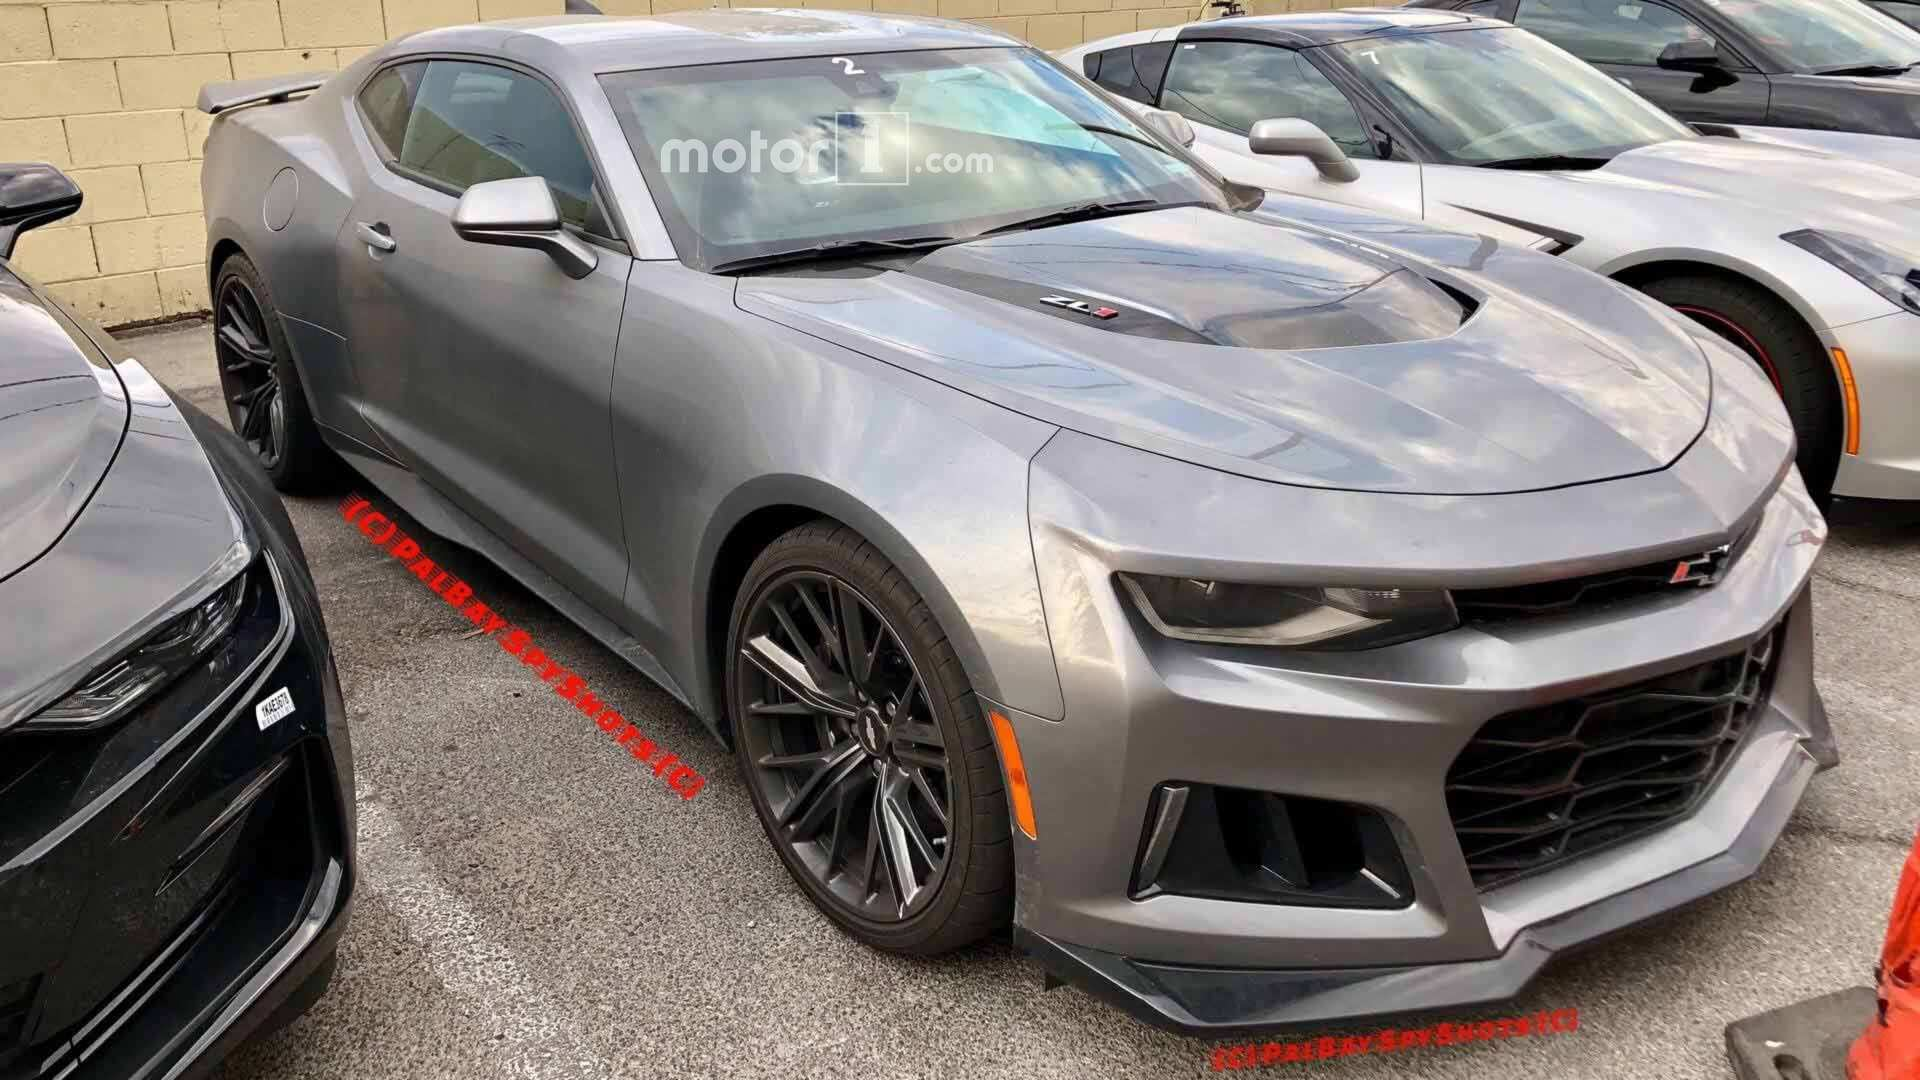 28 New 2019 The Camaro Ss Review